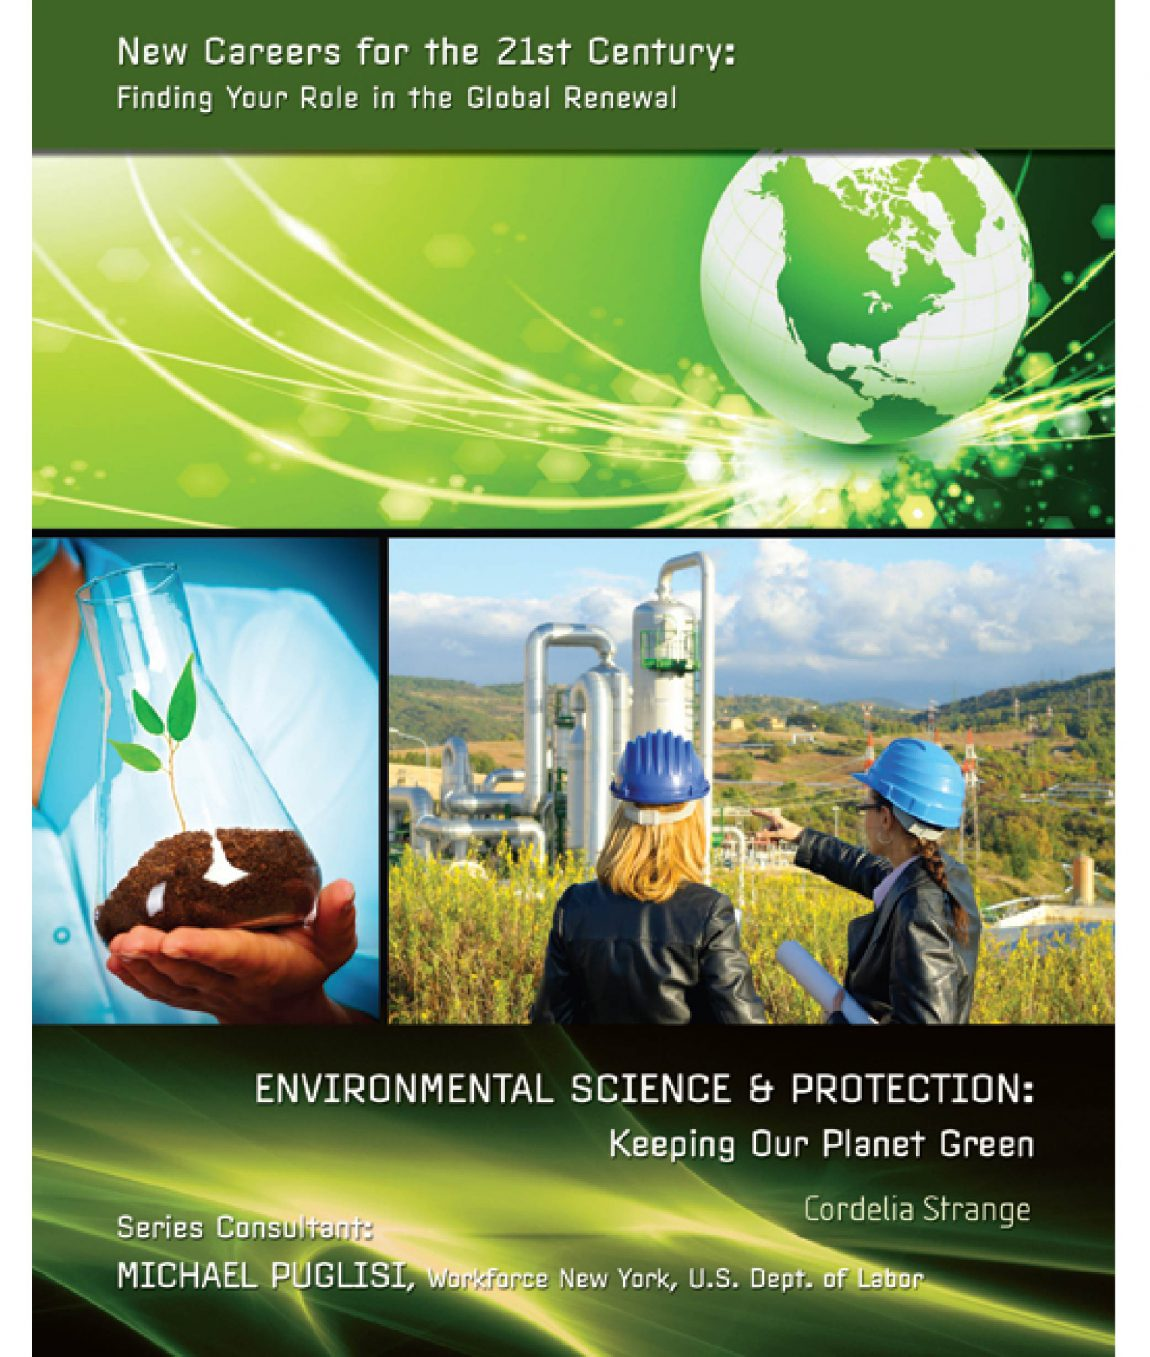 environmental-science-and-protection-01.jpg